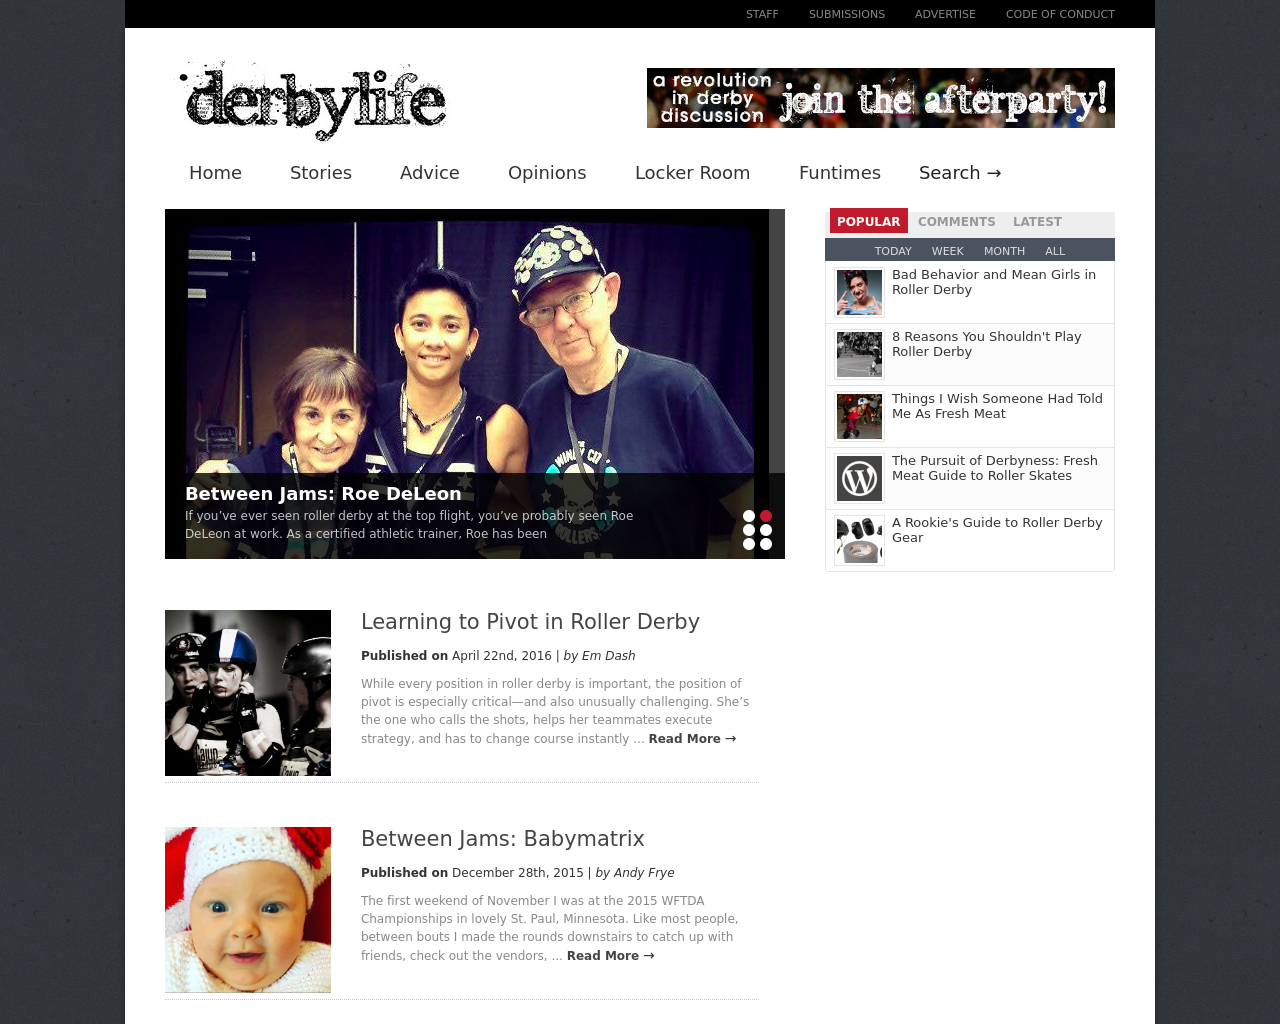 DerbyLife-Advertising-Reviews-Pricing